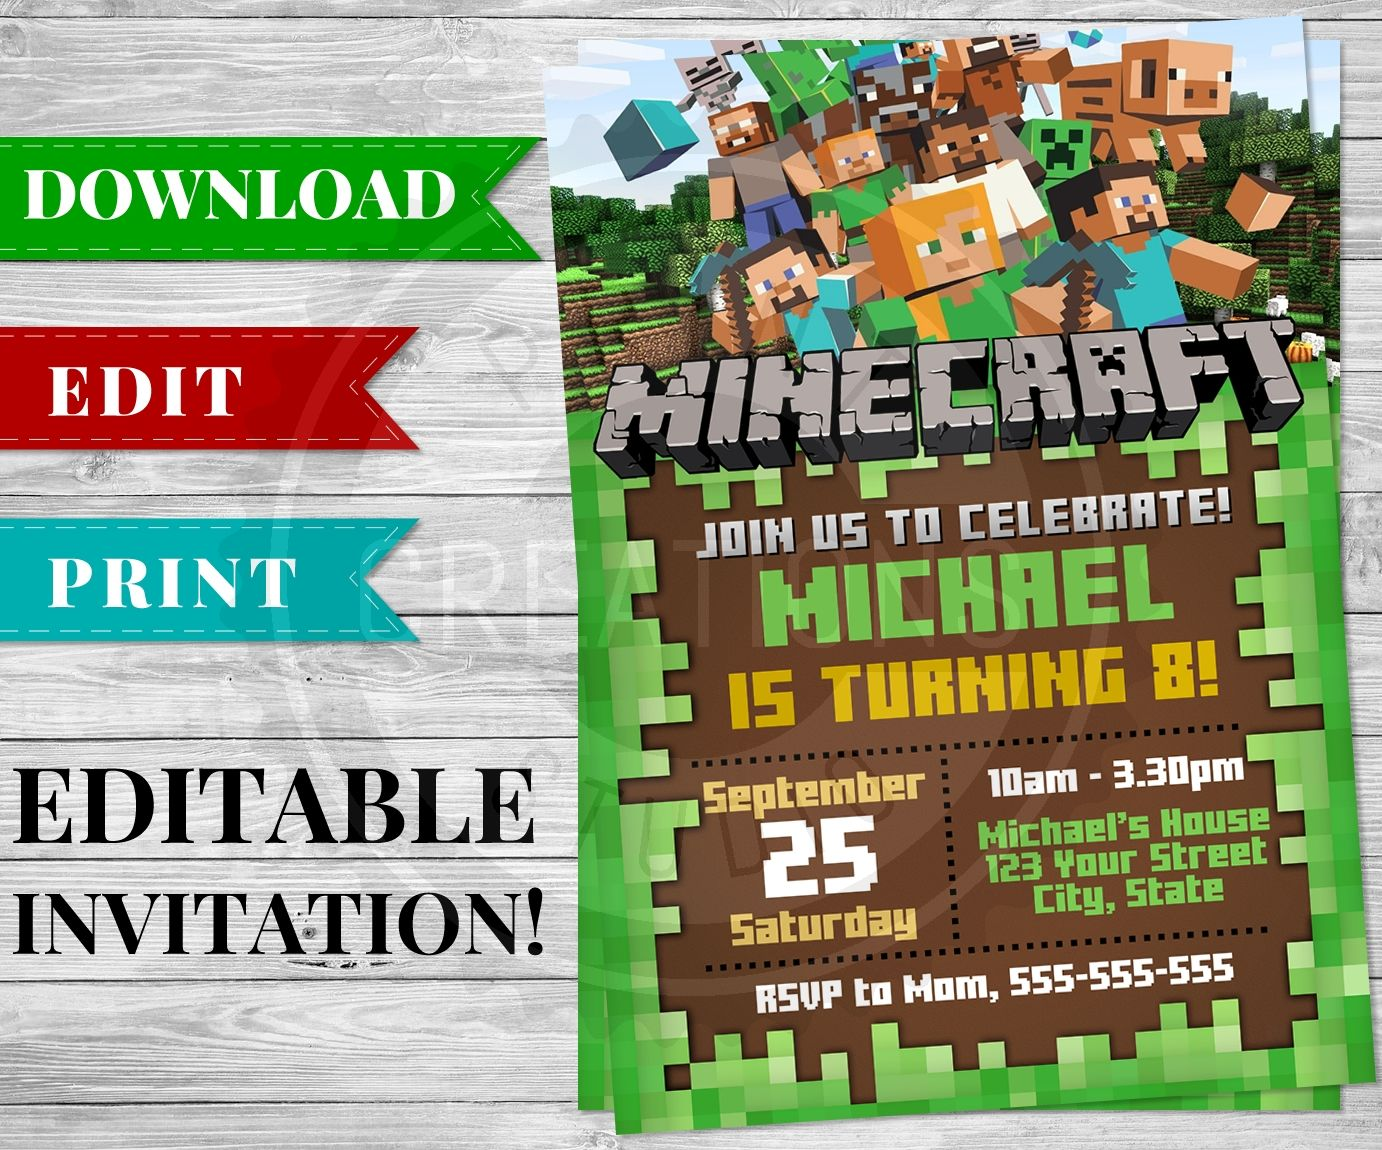 Printable Minecraft Invitation Ready For You To Download And Add Your Party Details This Is An Editable PDF Be Personalized